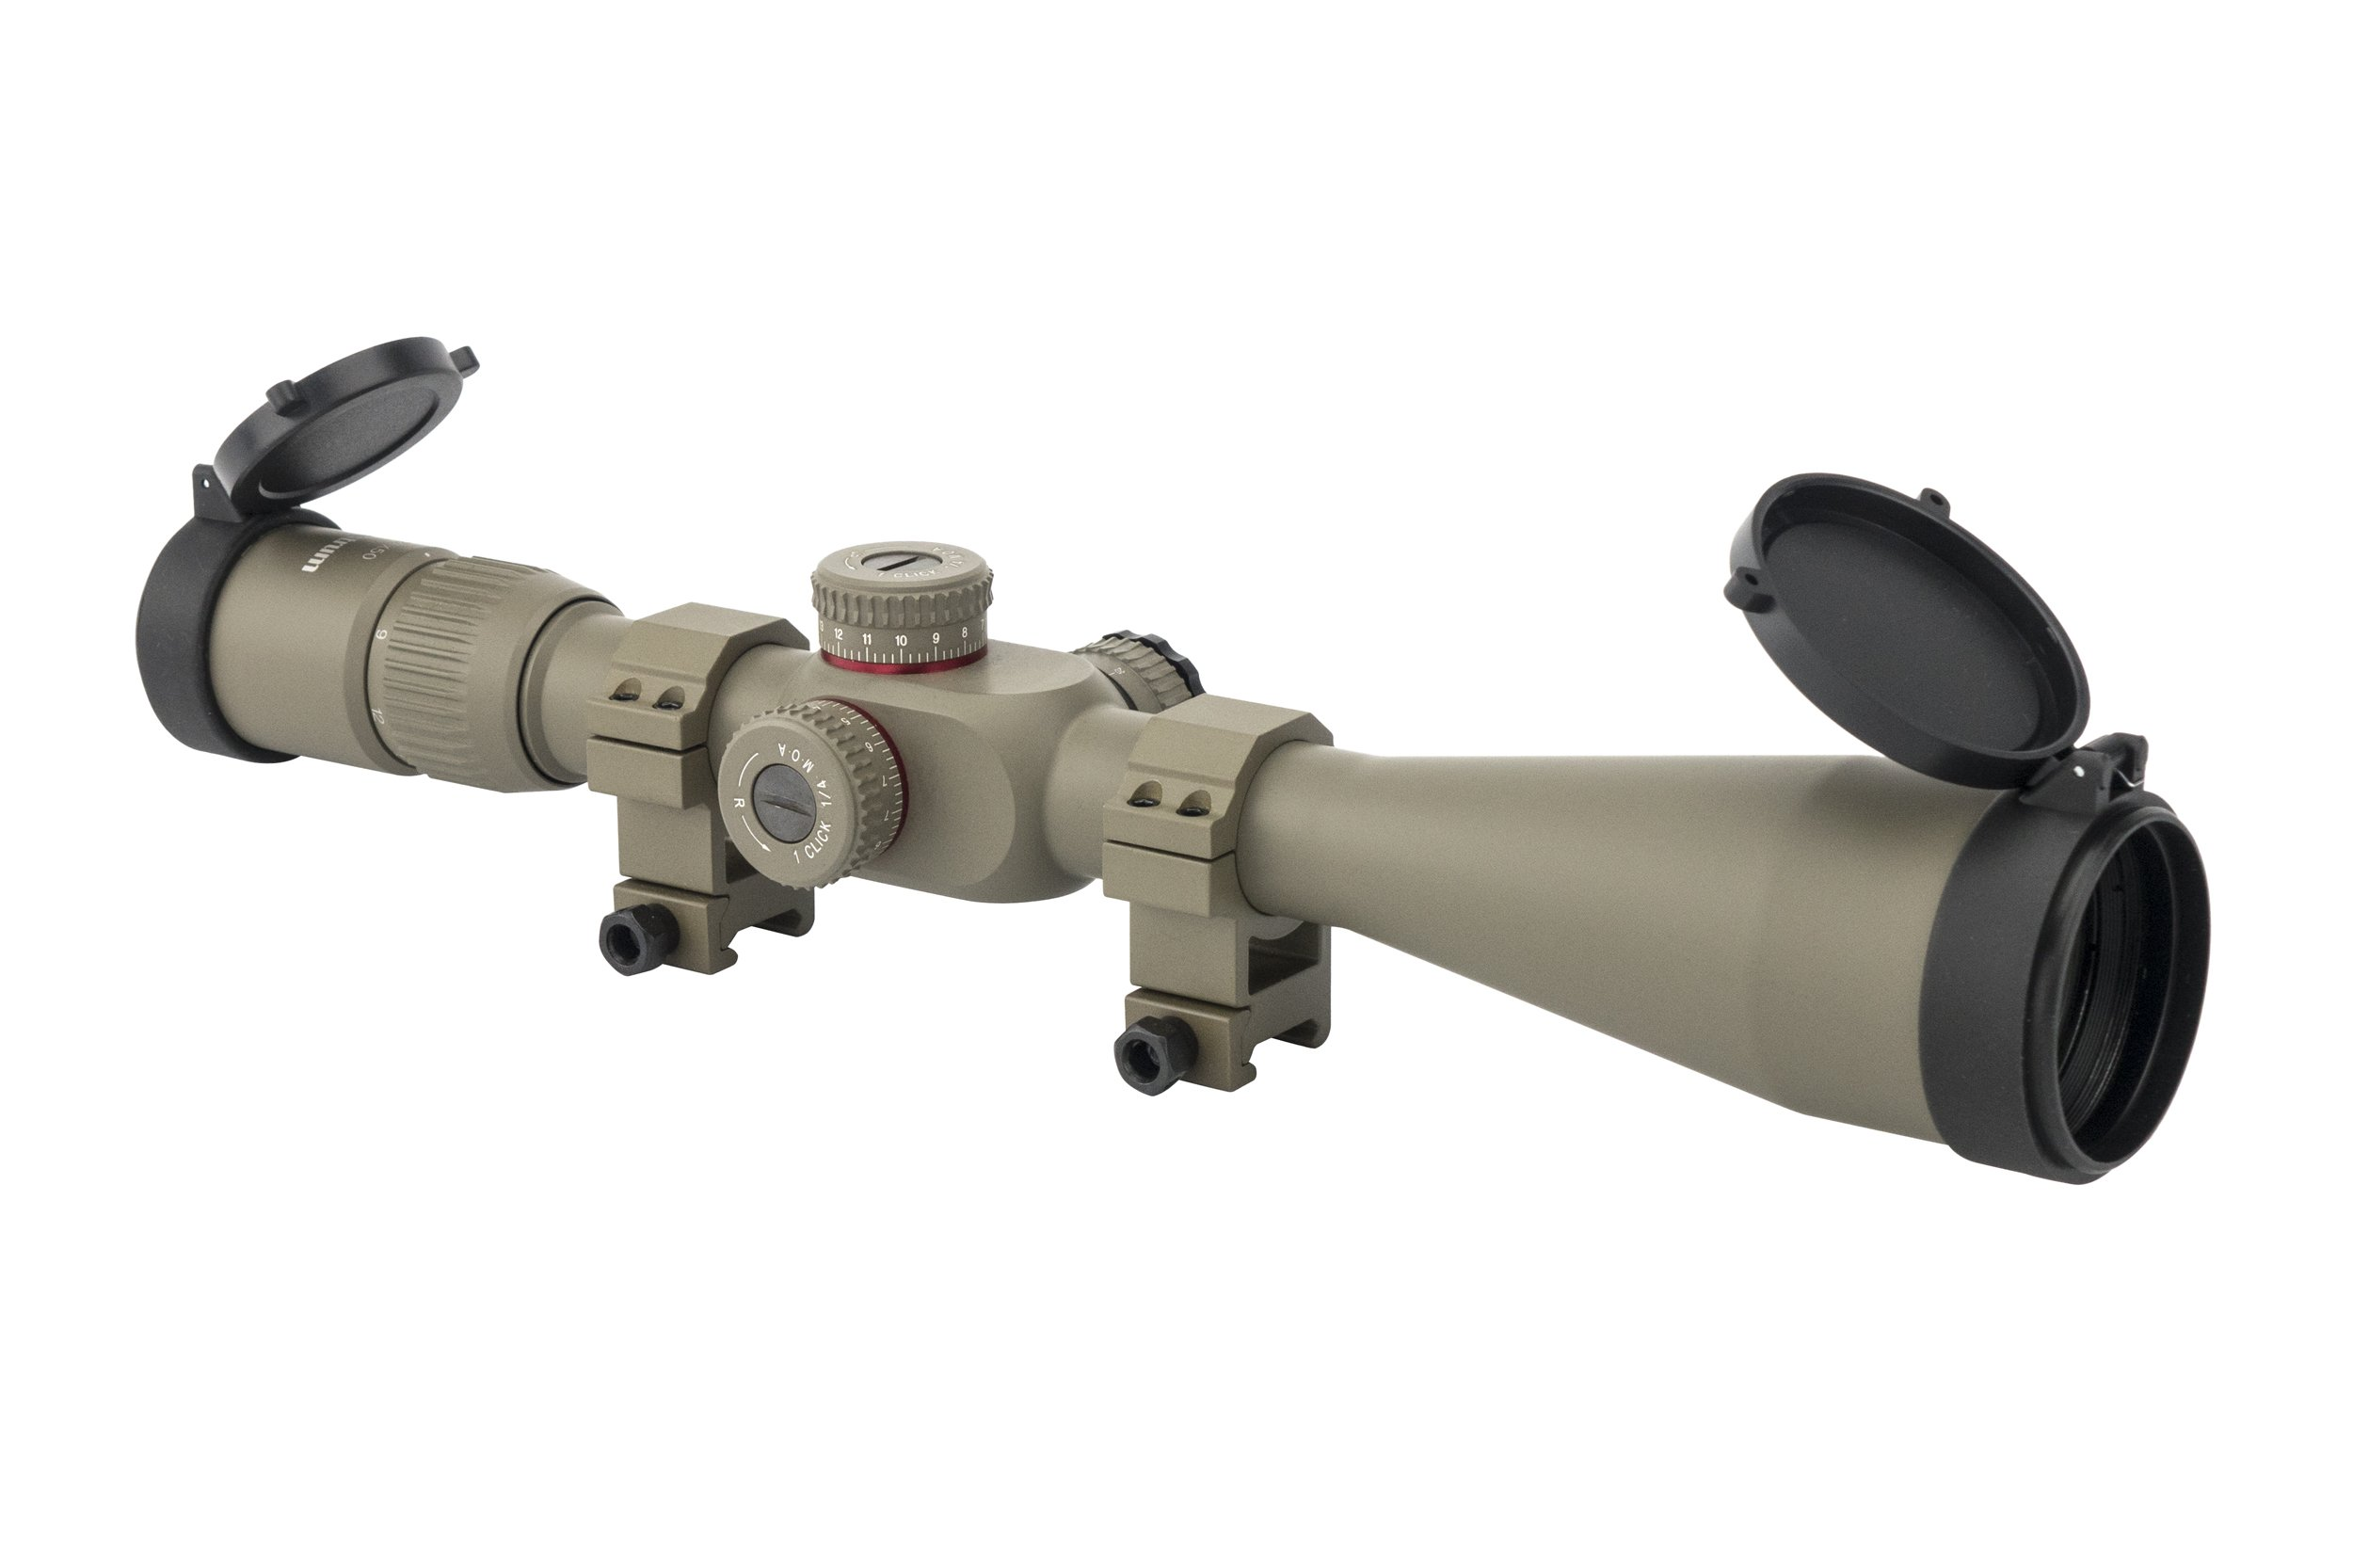 Monstrum Tactical G2 6-24x50 First Focal Plane (FFP) Rifle Scope with Illuminated Rangefinder Reticle and Adjustable Objective (Flat Dark Earth/Flat Dark Earth Rings)